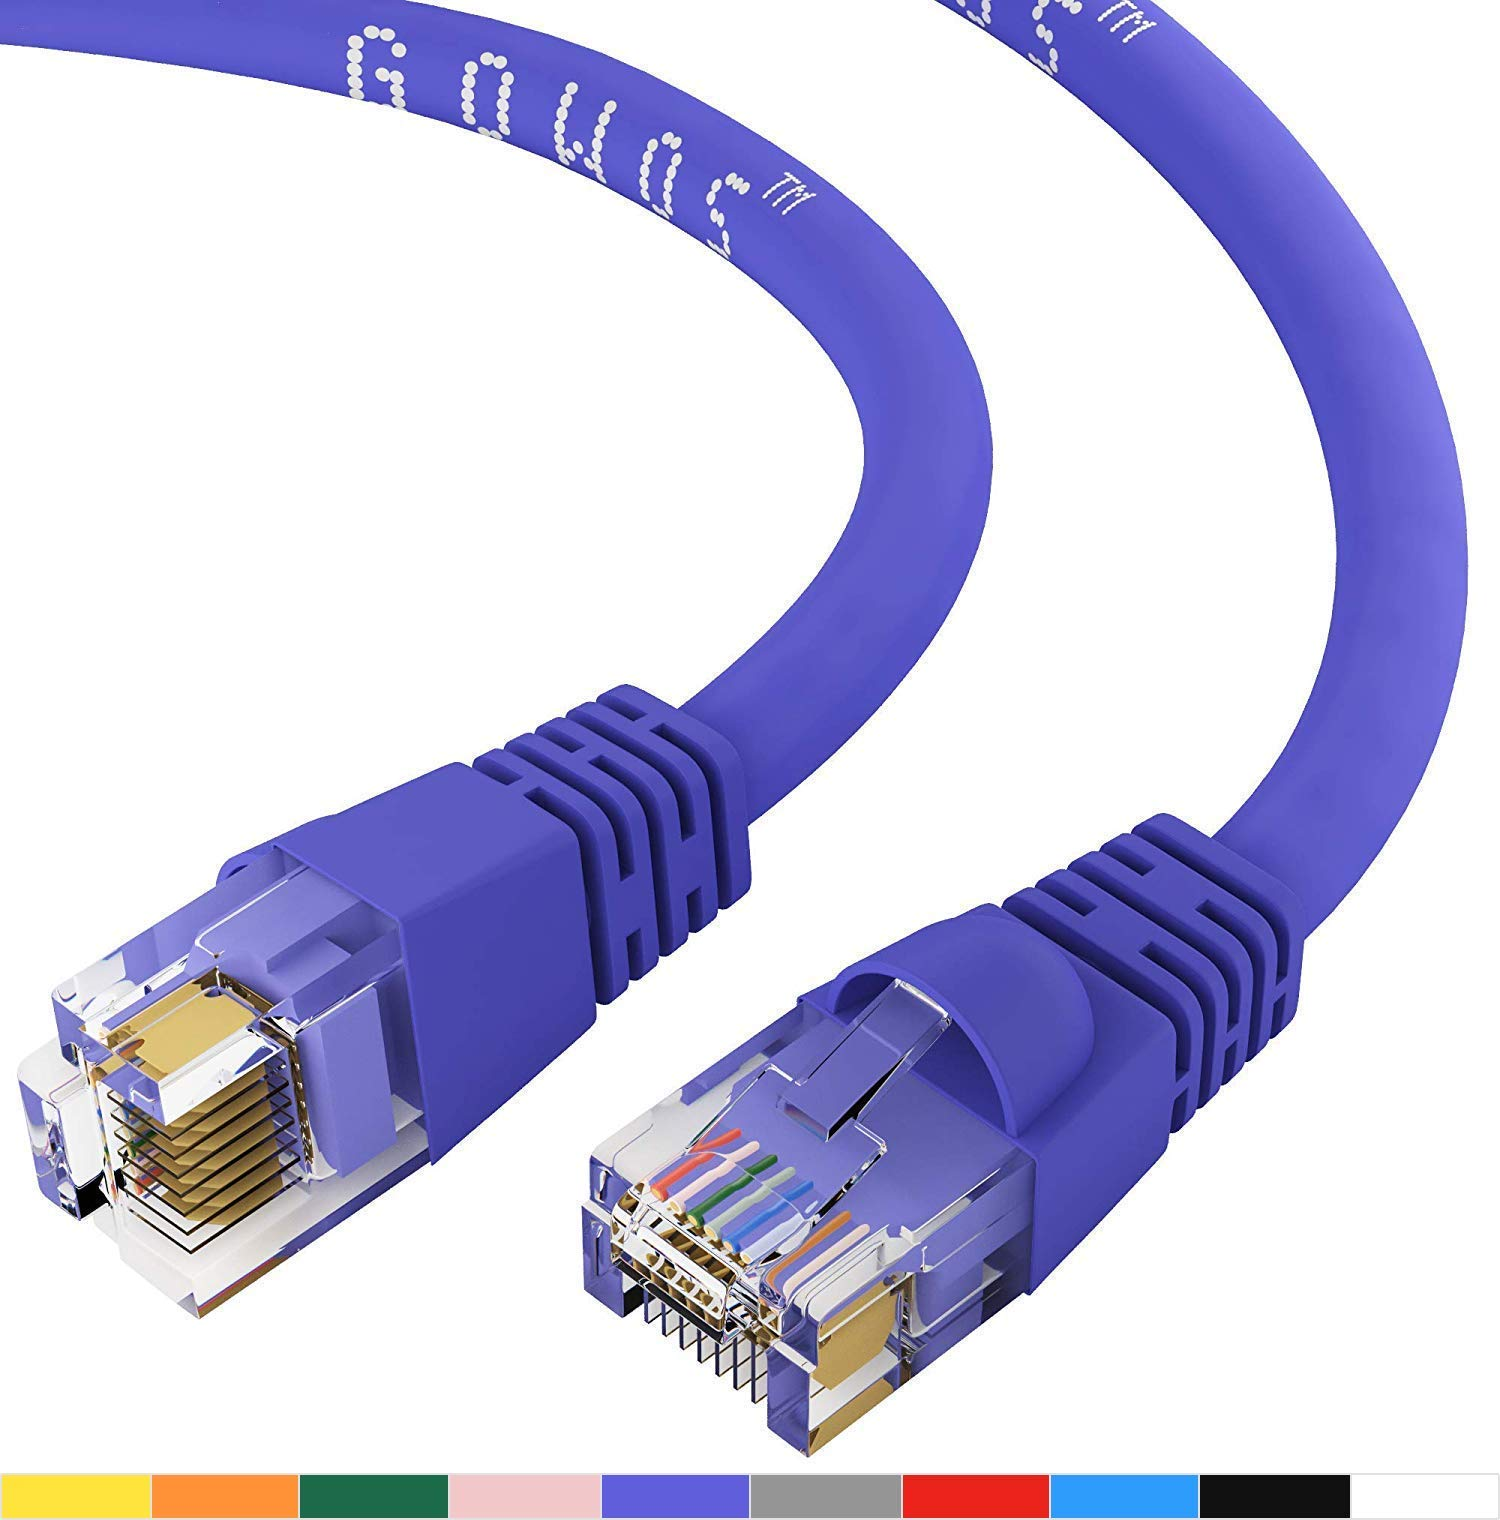 Available in 28 Lengths and 10 Colors RJ45 10Gbps High Speed LAN Internet Patch Cord GOWOS 20-Pack 2 Feet - Yellow Cat5e Ethernet Cable UTP Computer Network Cable with Snagless Connector